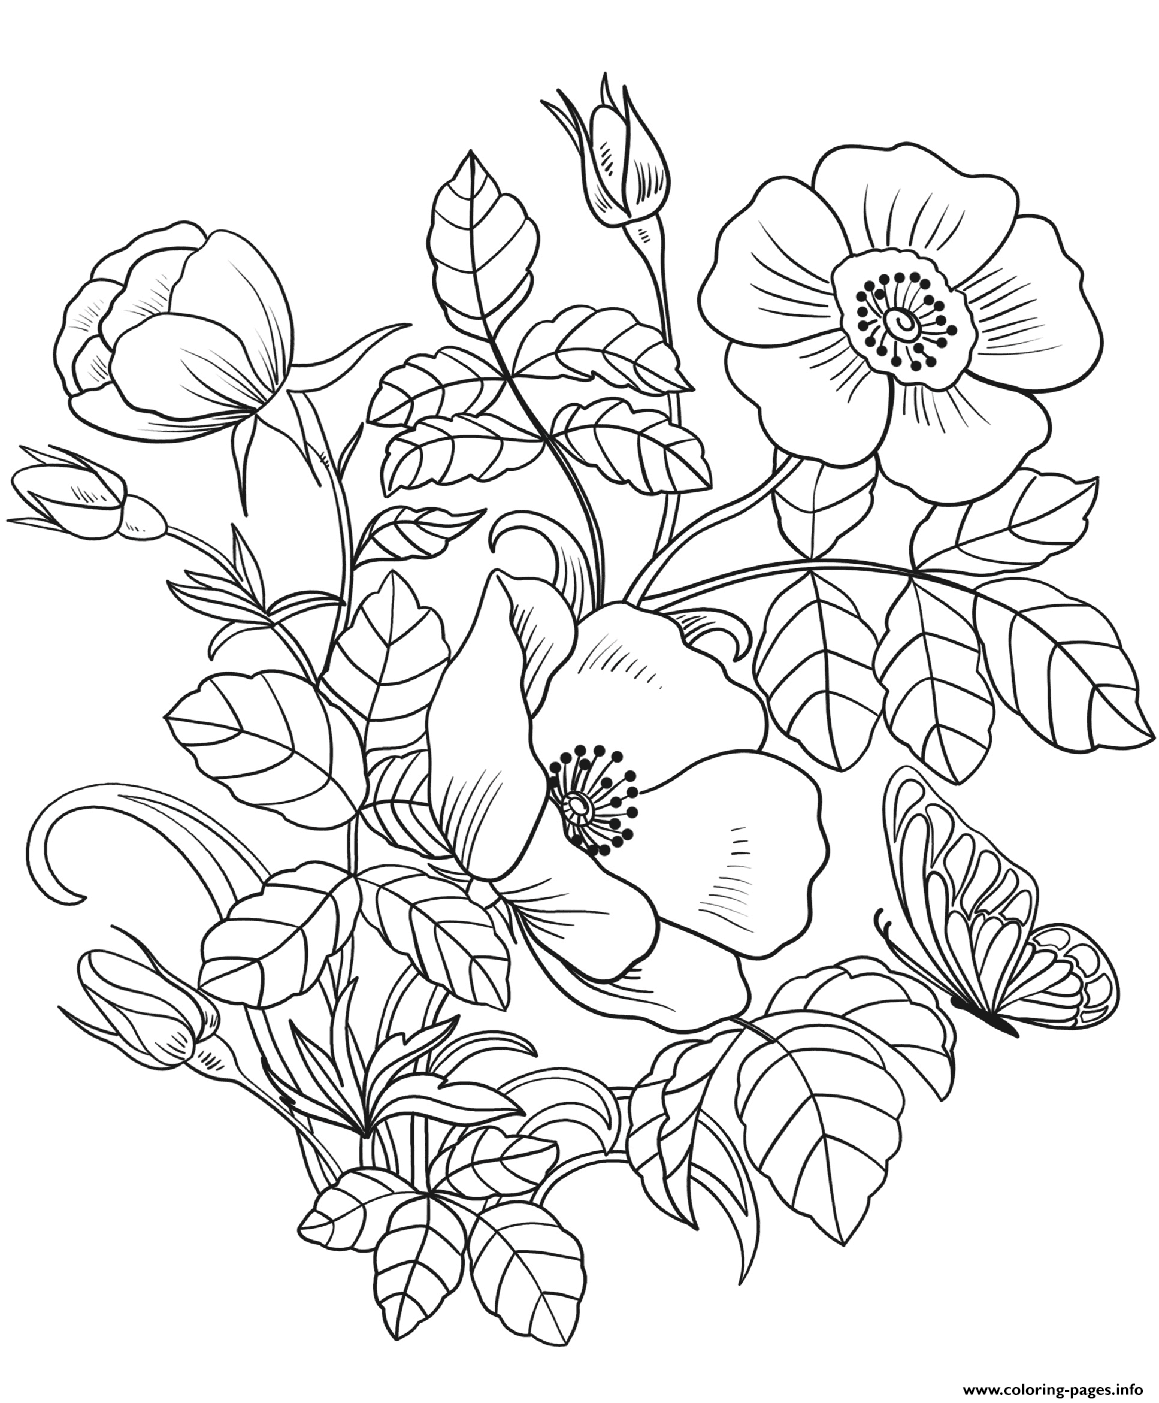 flowers coloring sheet flower coloring pages getcoloringpagescom coloring sheet flowers